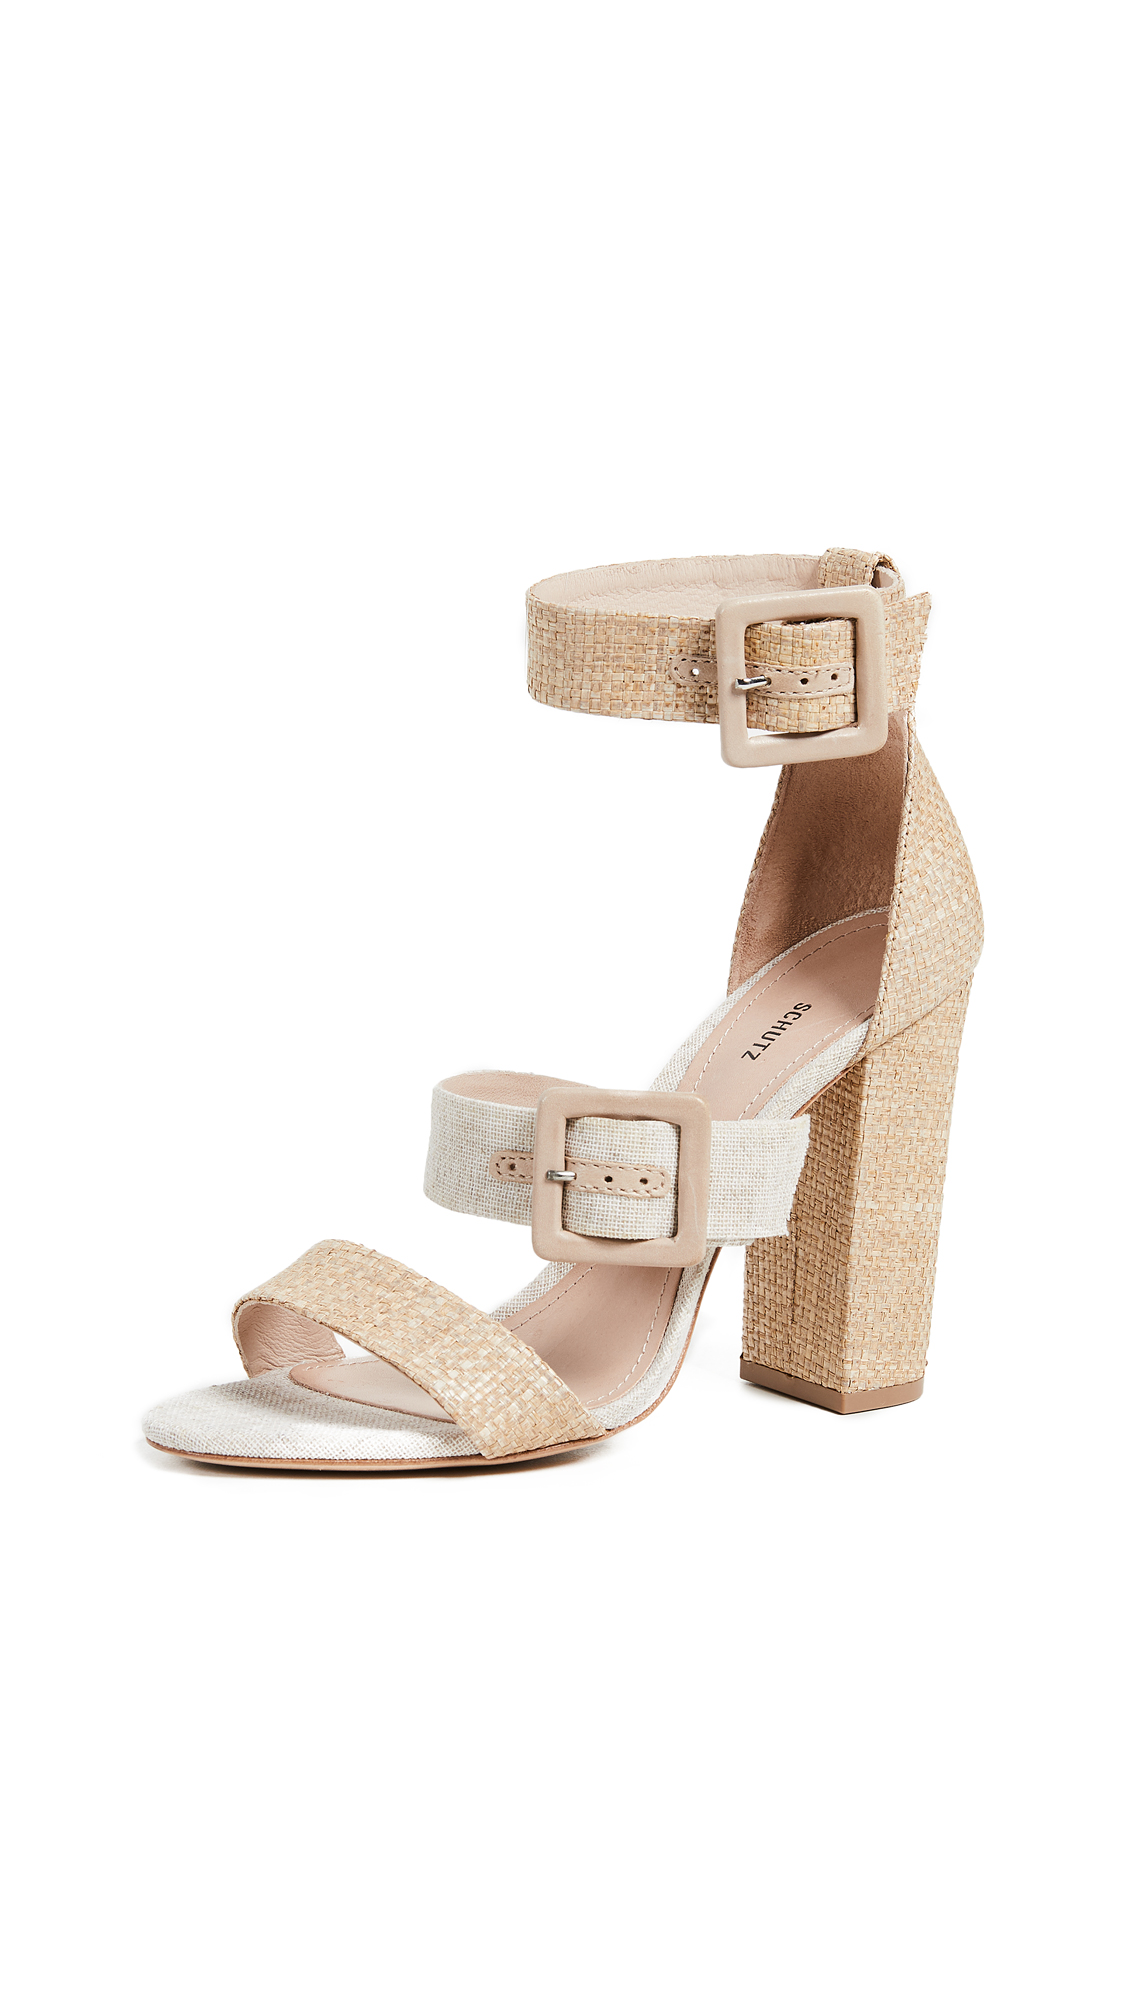 Schutz Sarah Strappy Sandals - Natural